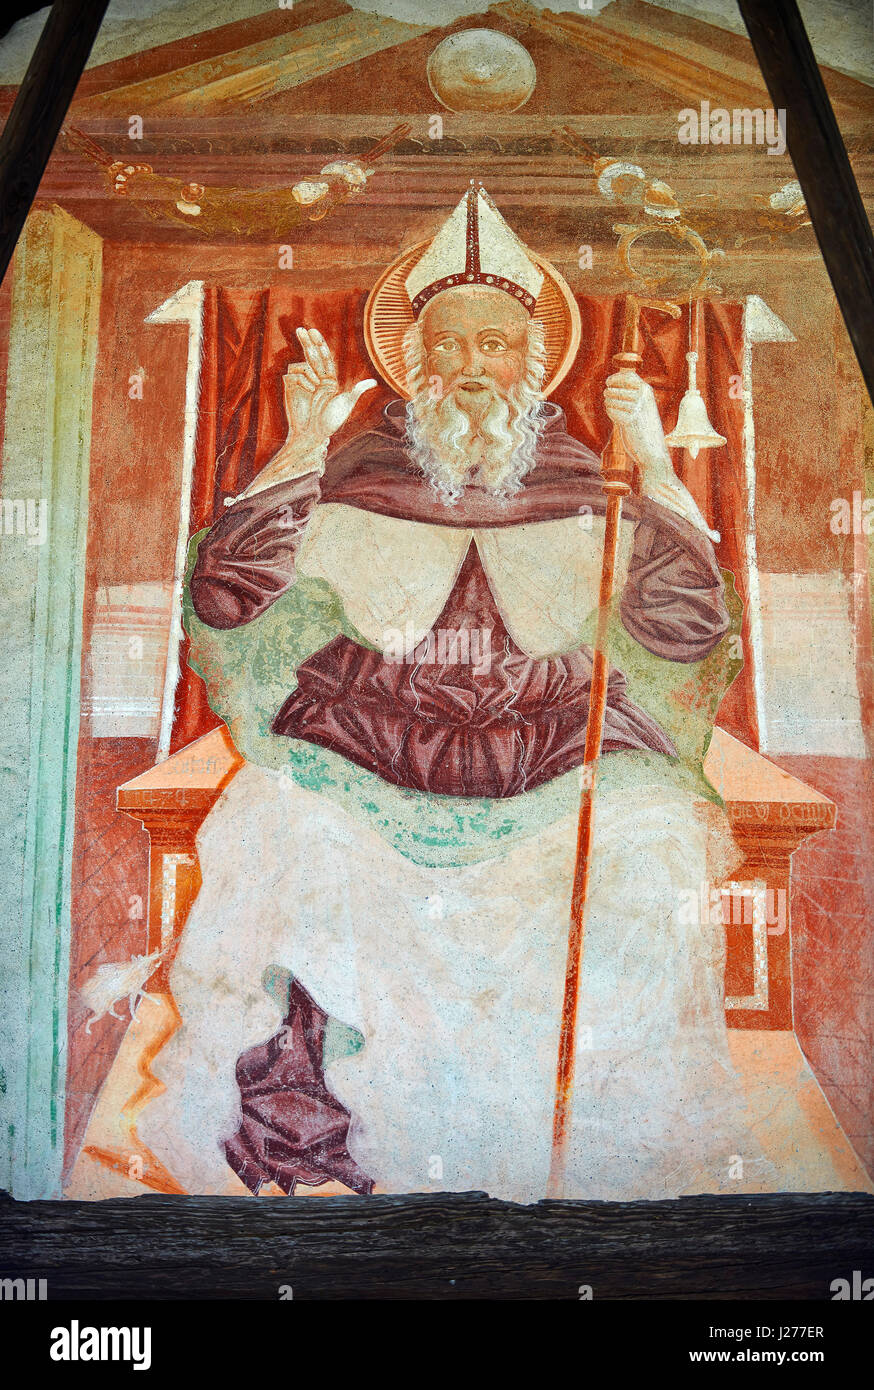 Religious mural of Saint Antonio Abate an a throne above with the canonical symbols of a bell and piglet, above - Stock Image